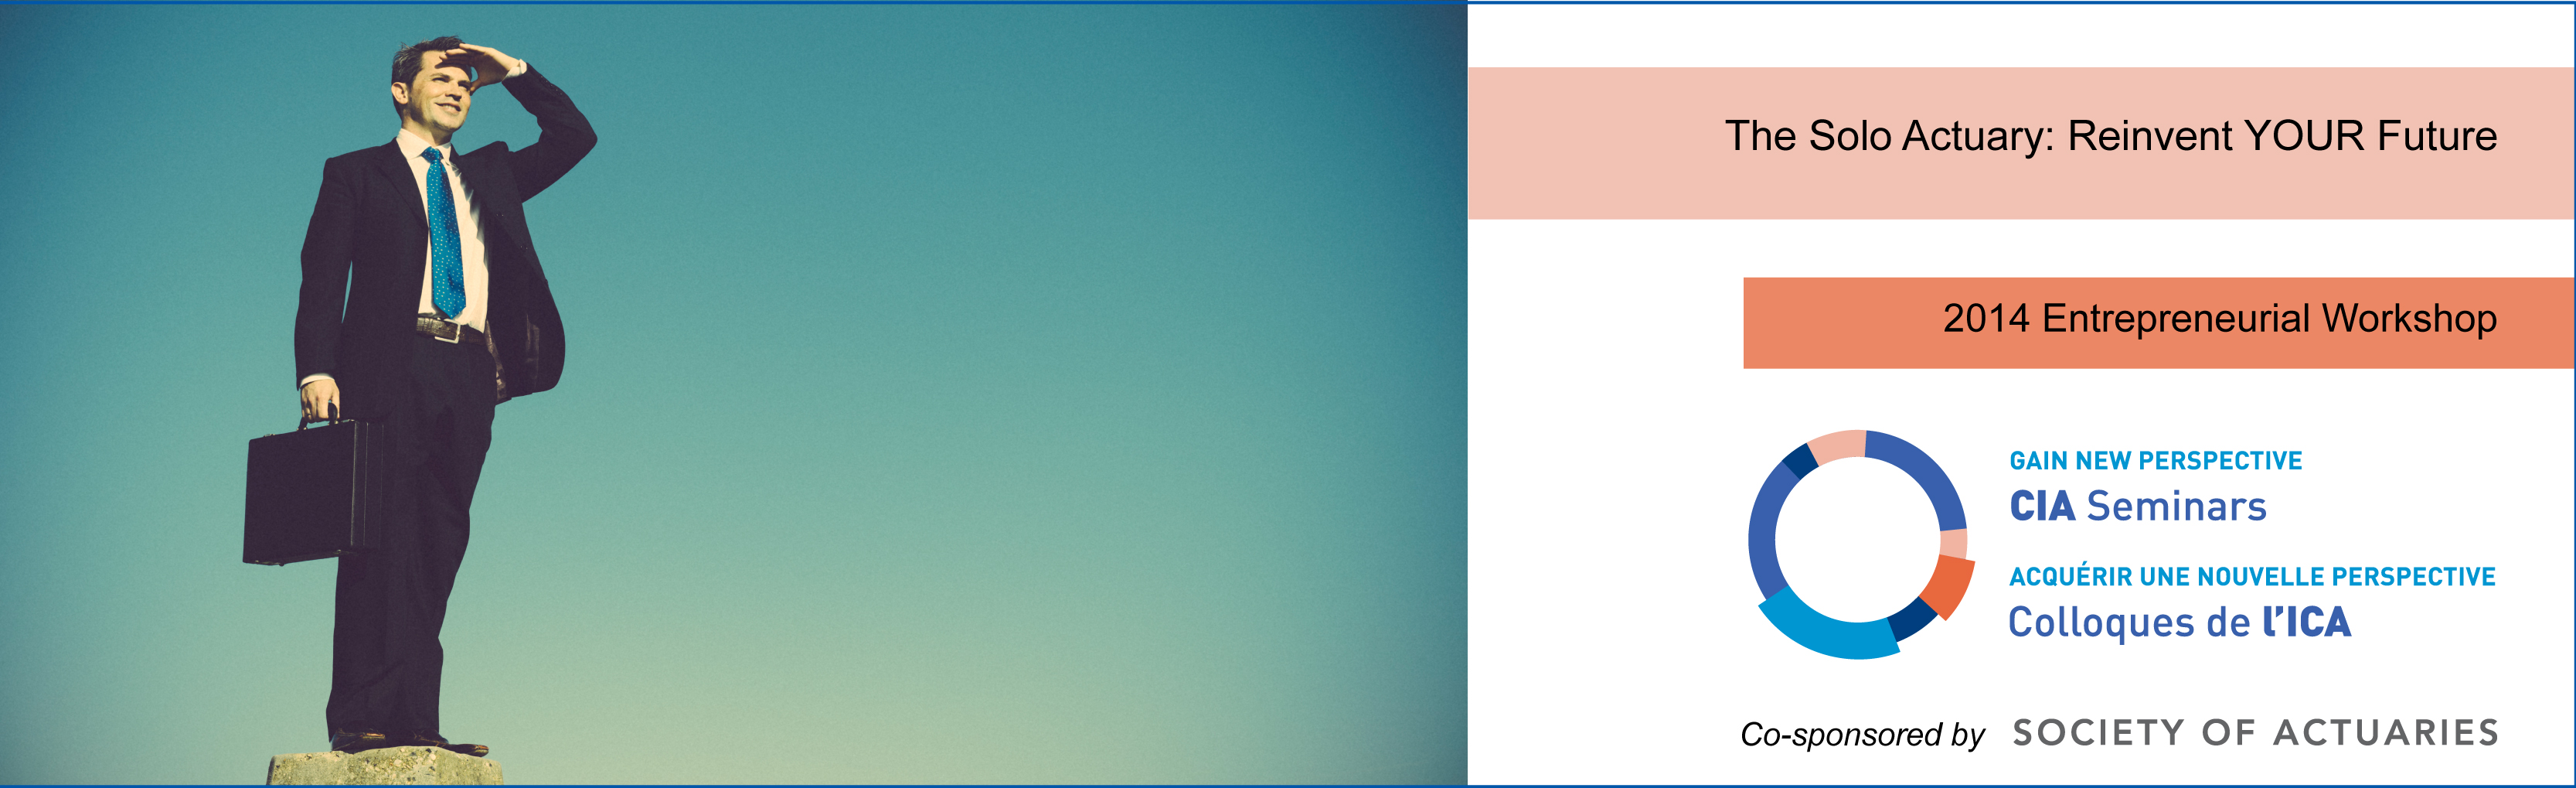 Entrepreneur Workshop